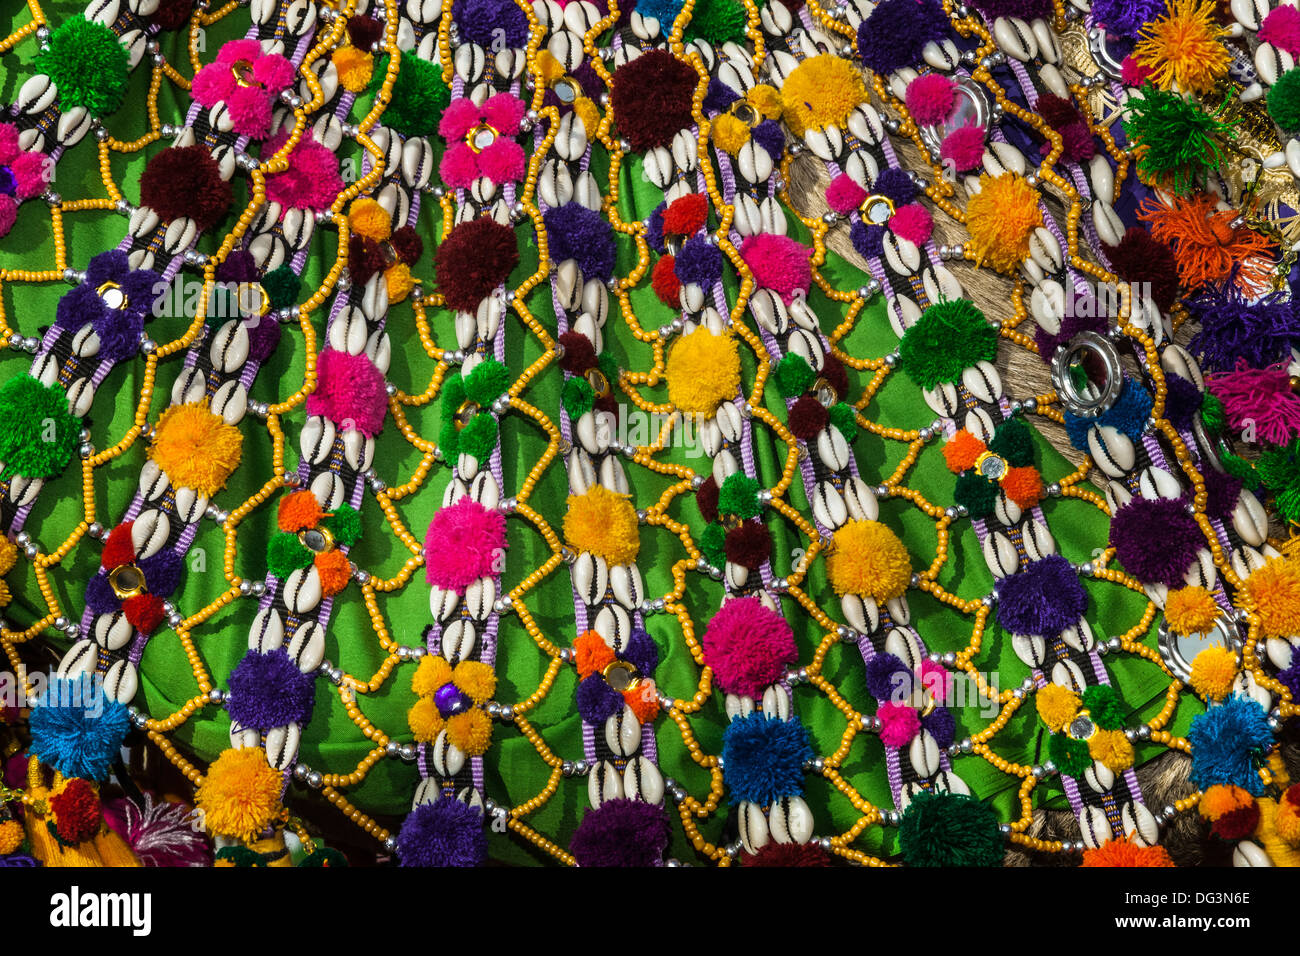 India, Rajasthan, Jaisalmer, decorative camel neckware with cowrie shells - Stock Image